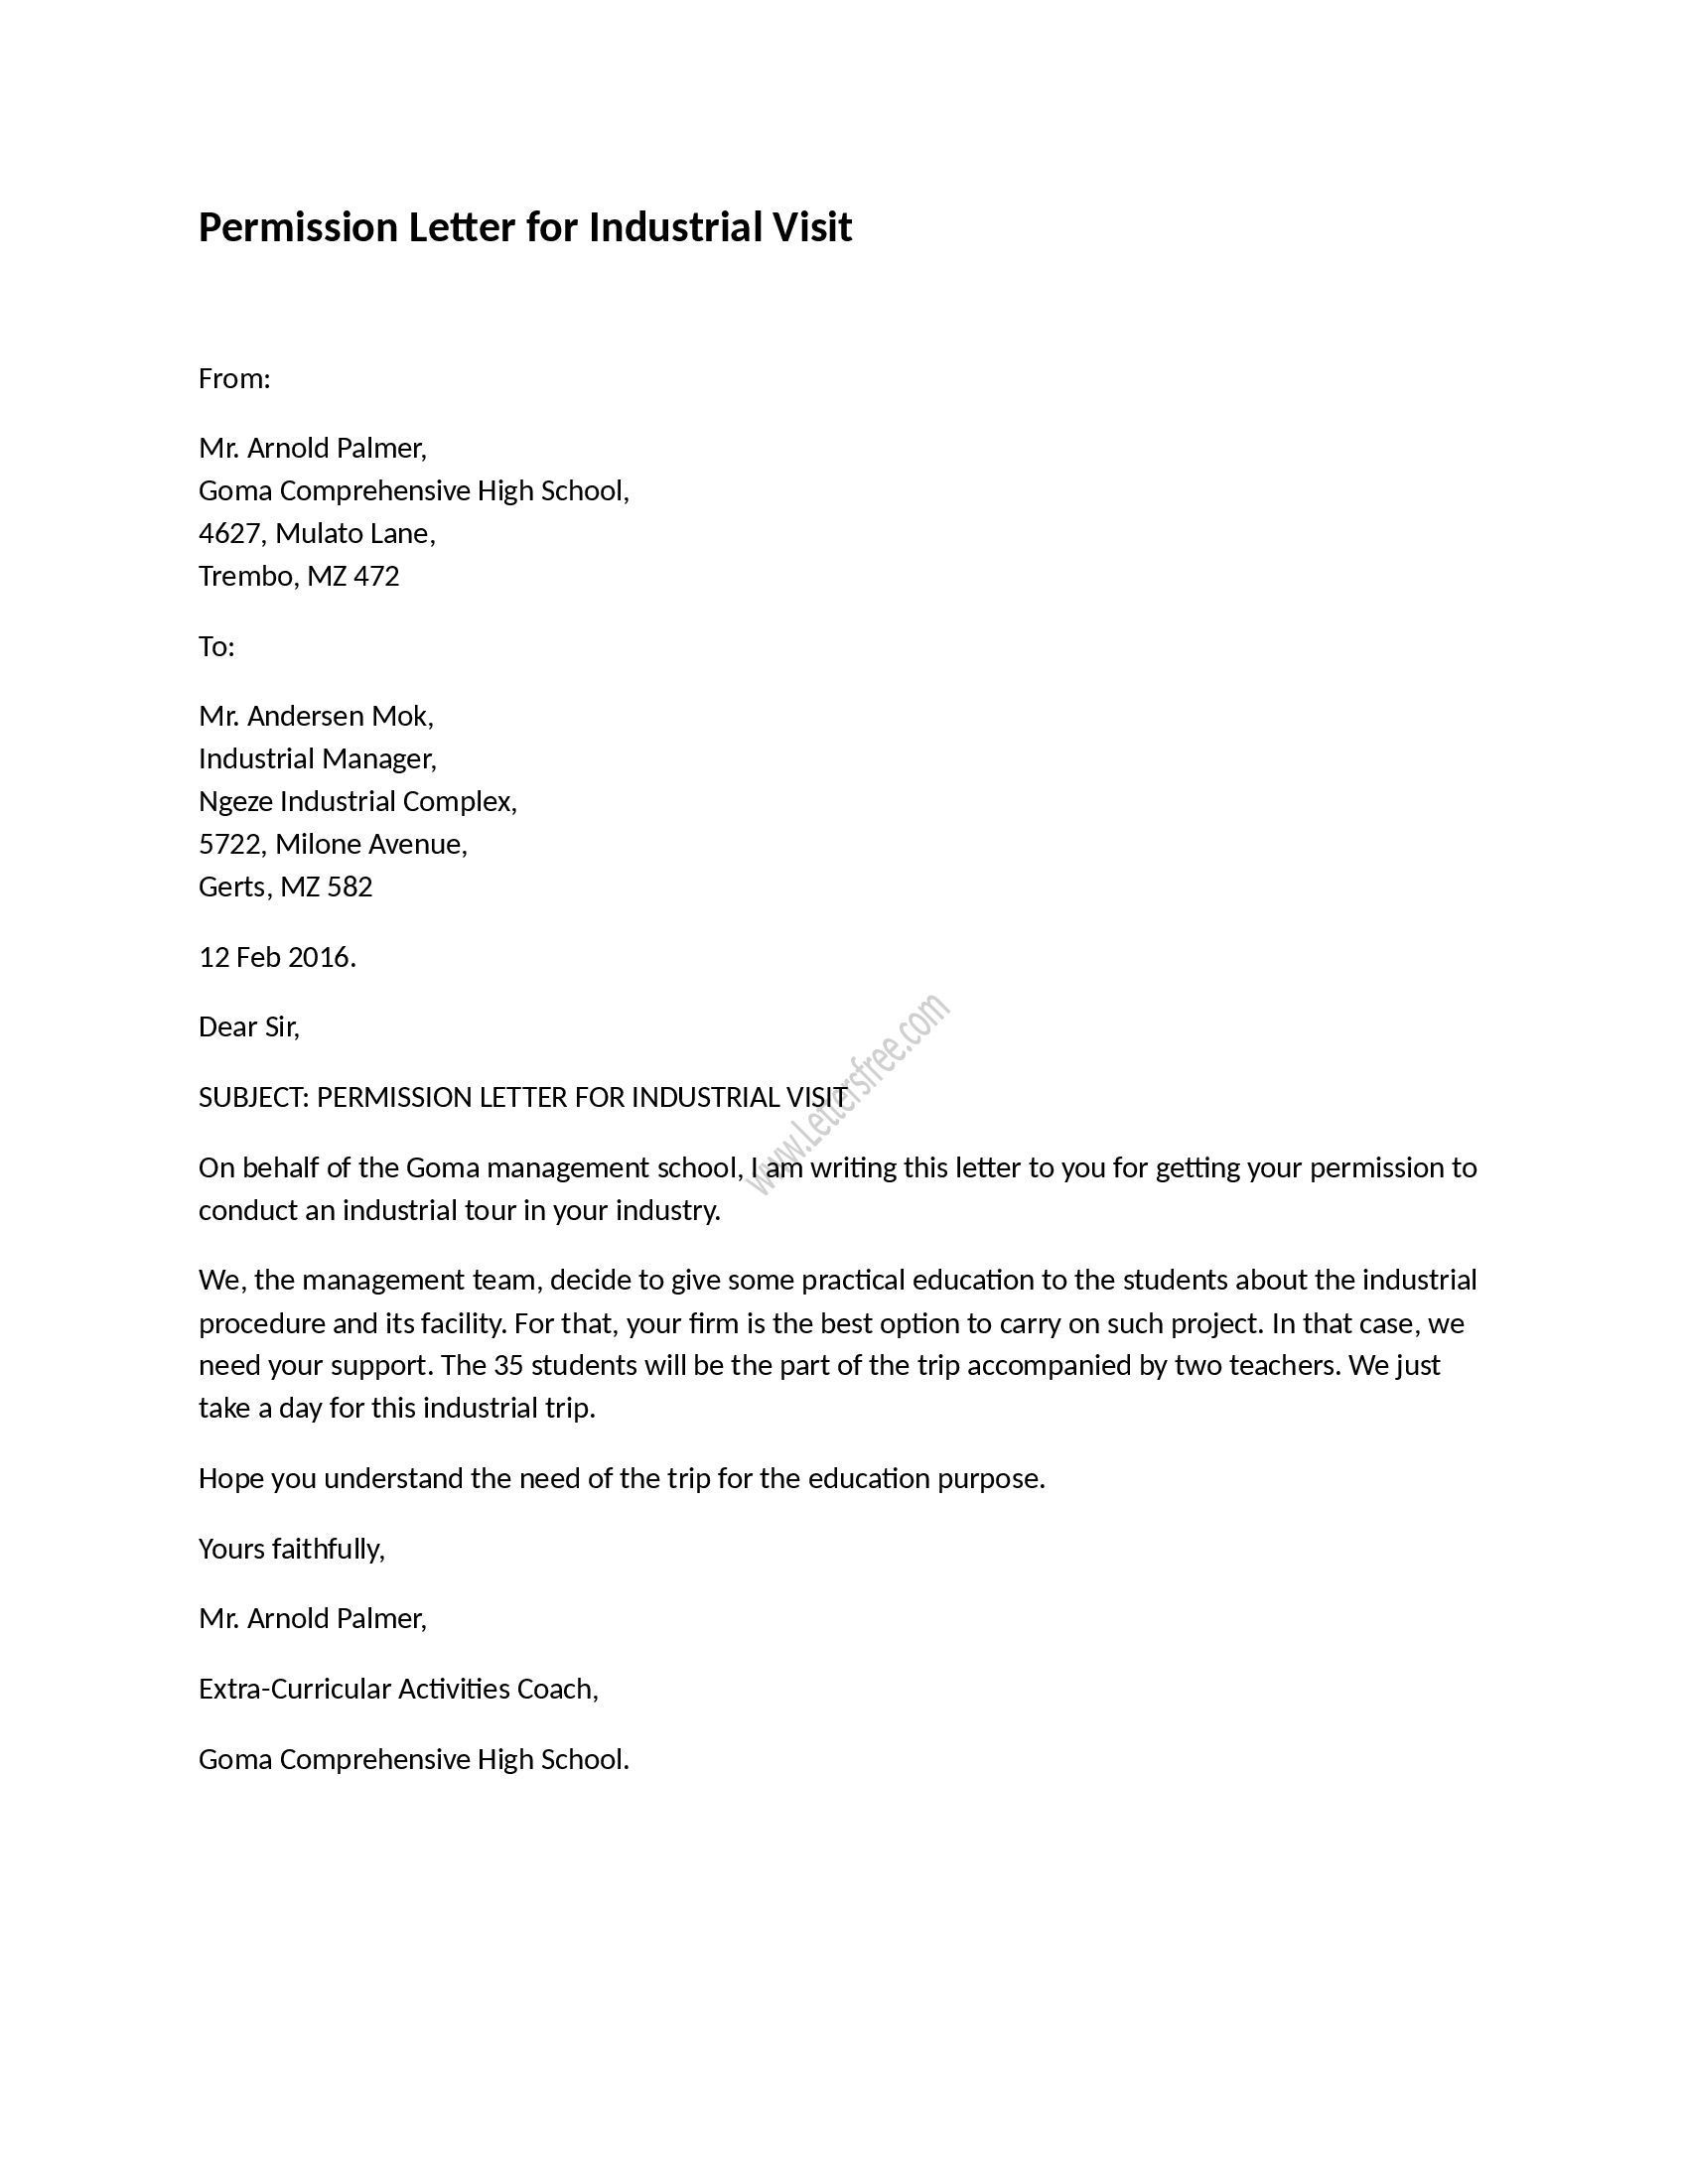 Example Of Permission Letter For Industrial Visit As Its Name Says